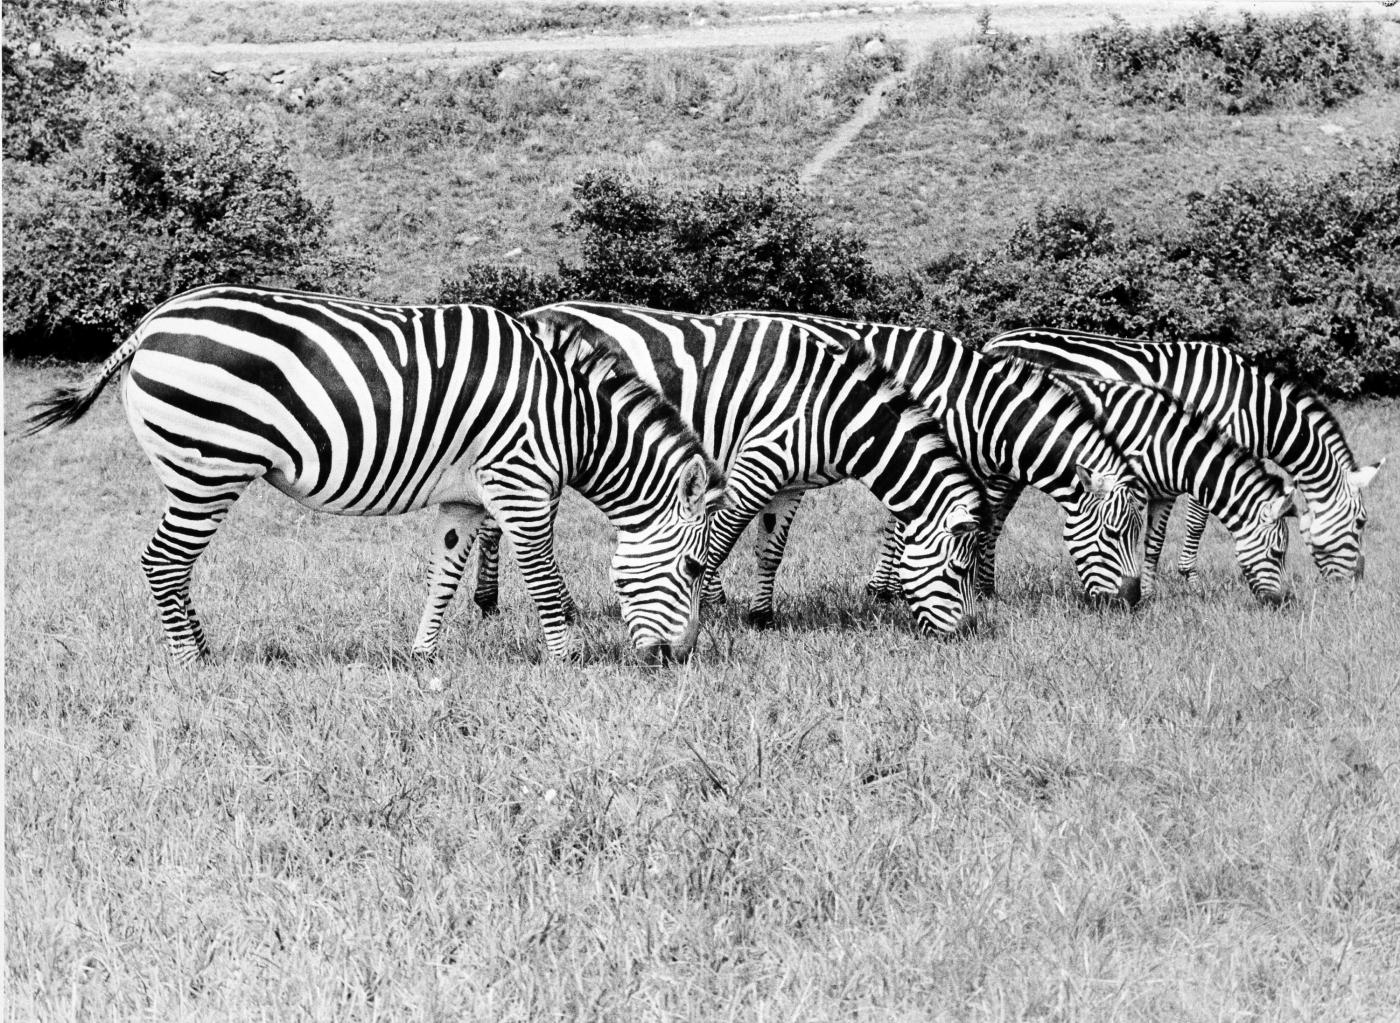 Zebras grazing at the Conservation Research Center (now called the Smithsonian Conservation Biology Institute) in 1979.